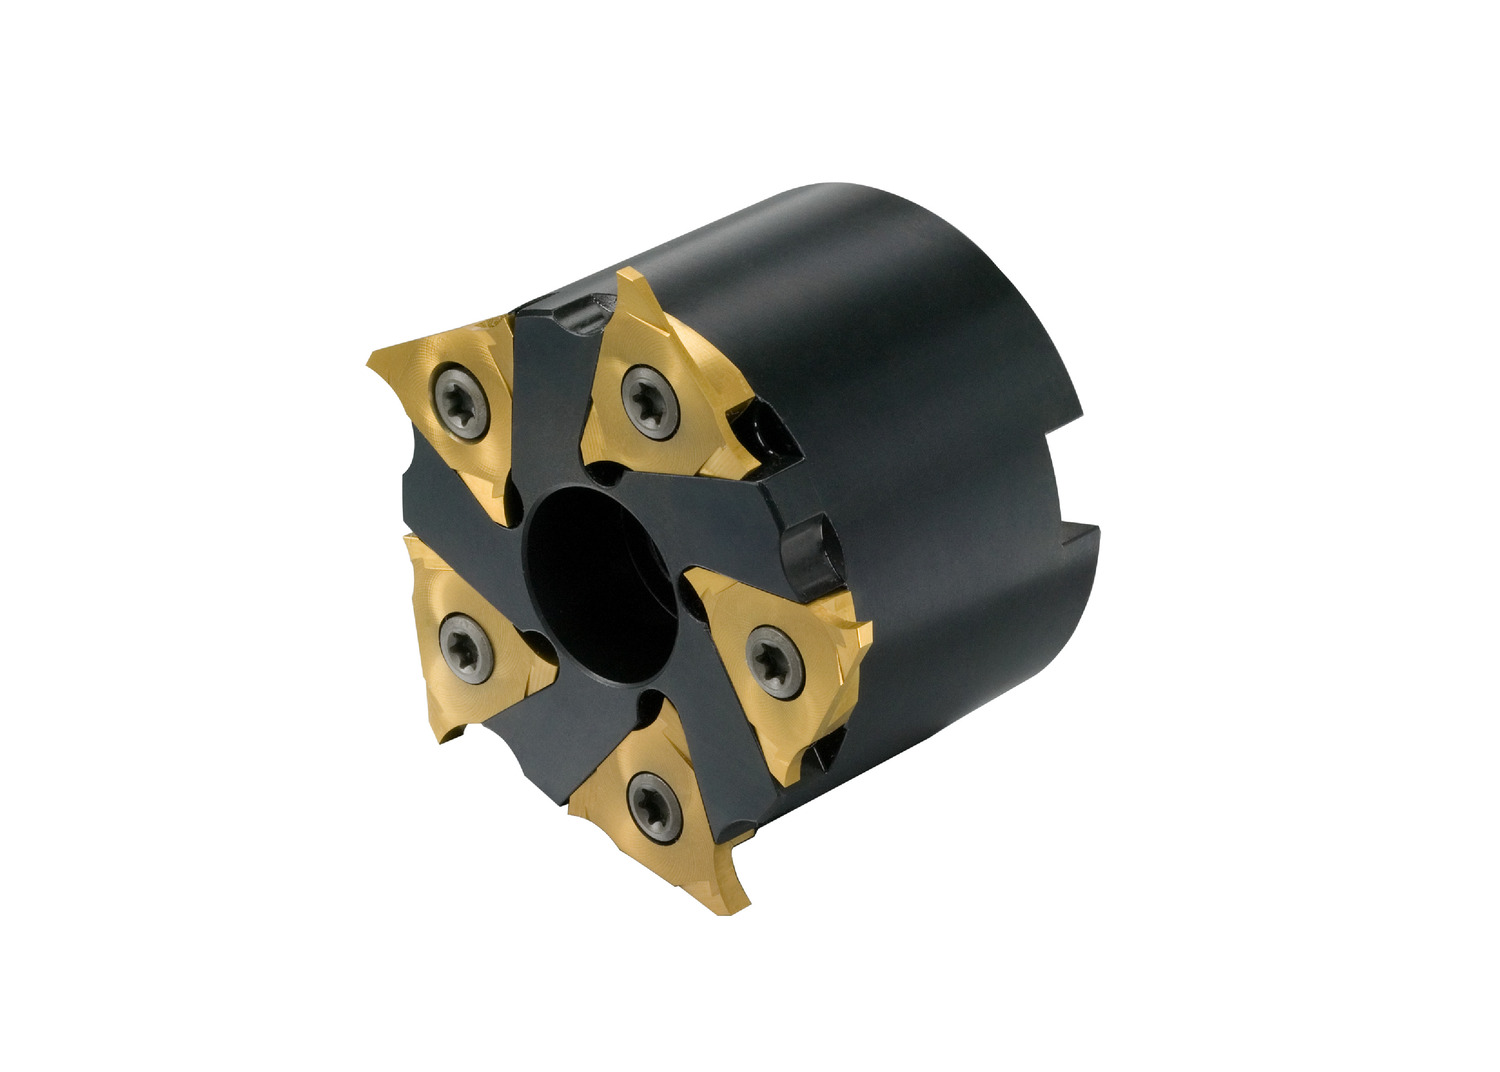 A328-063Q19-13M - Holders, Adapters & Heads